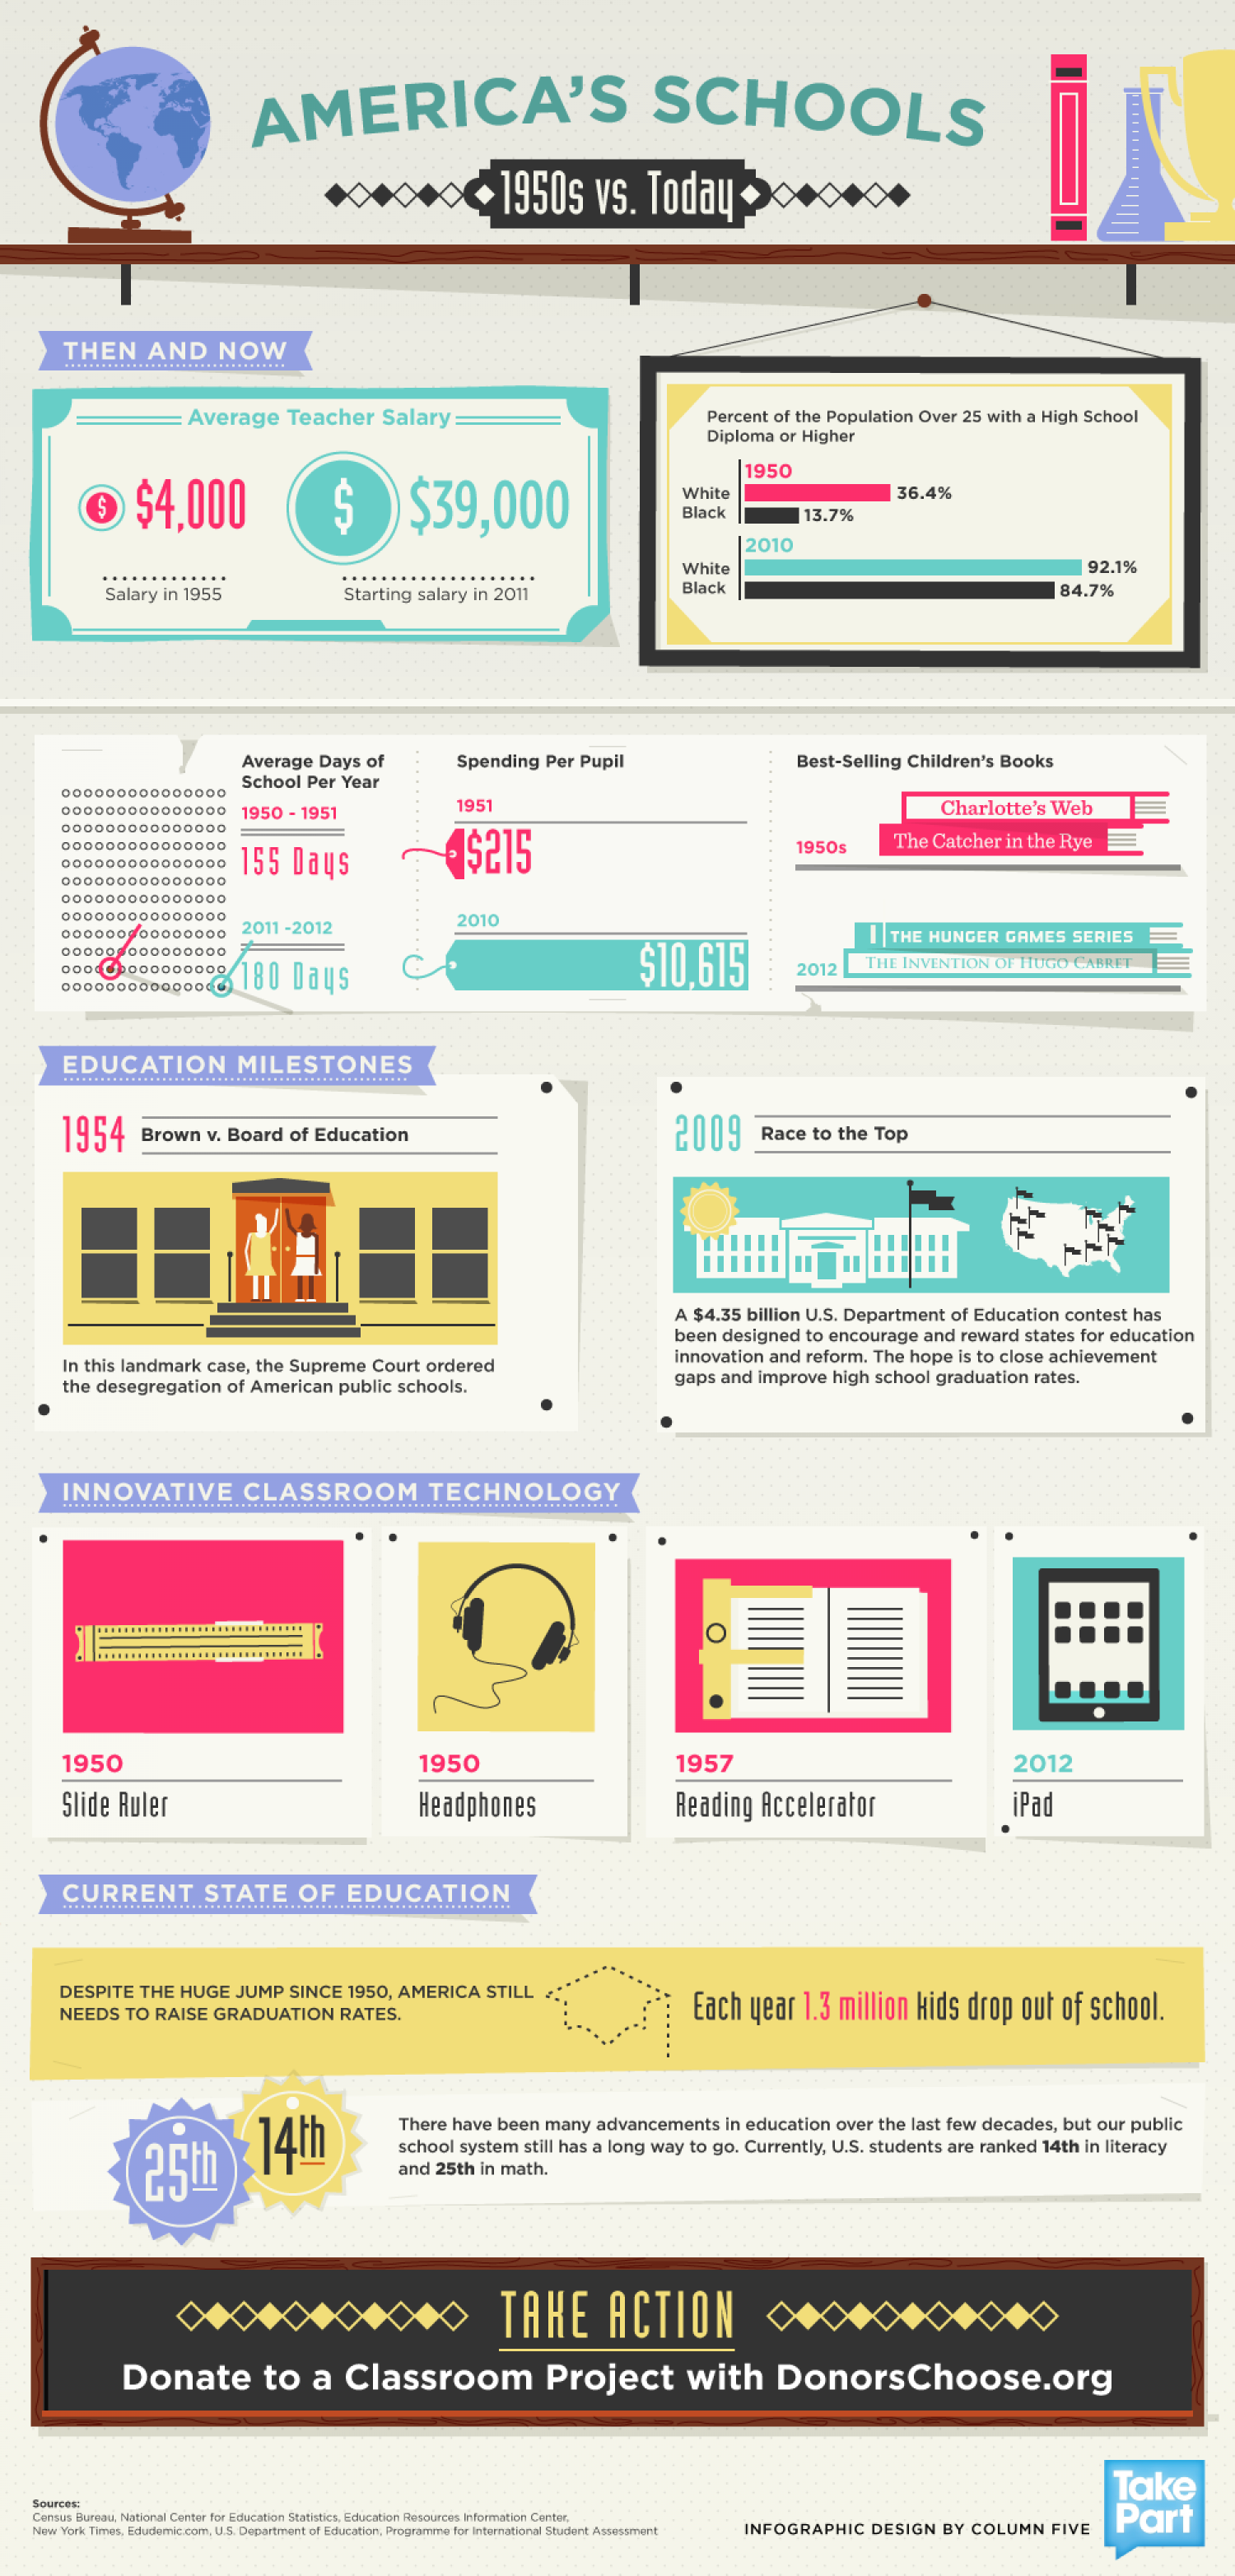 America's Schools in the 1950s vs. Today Infographic